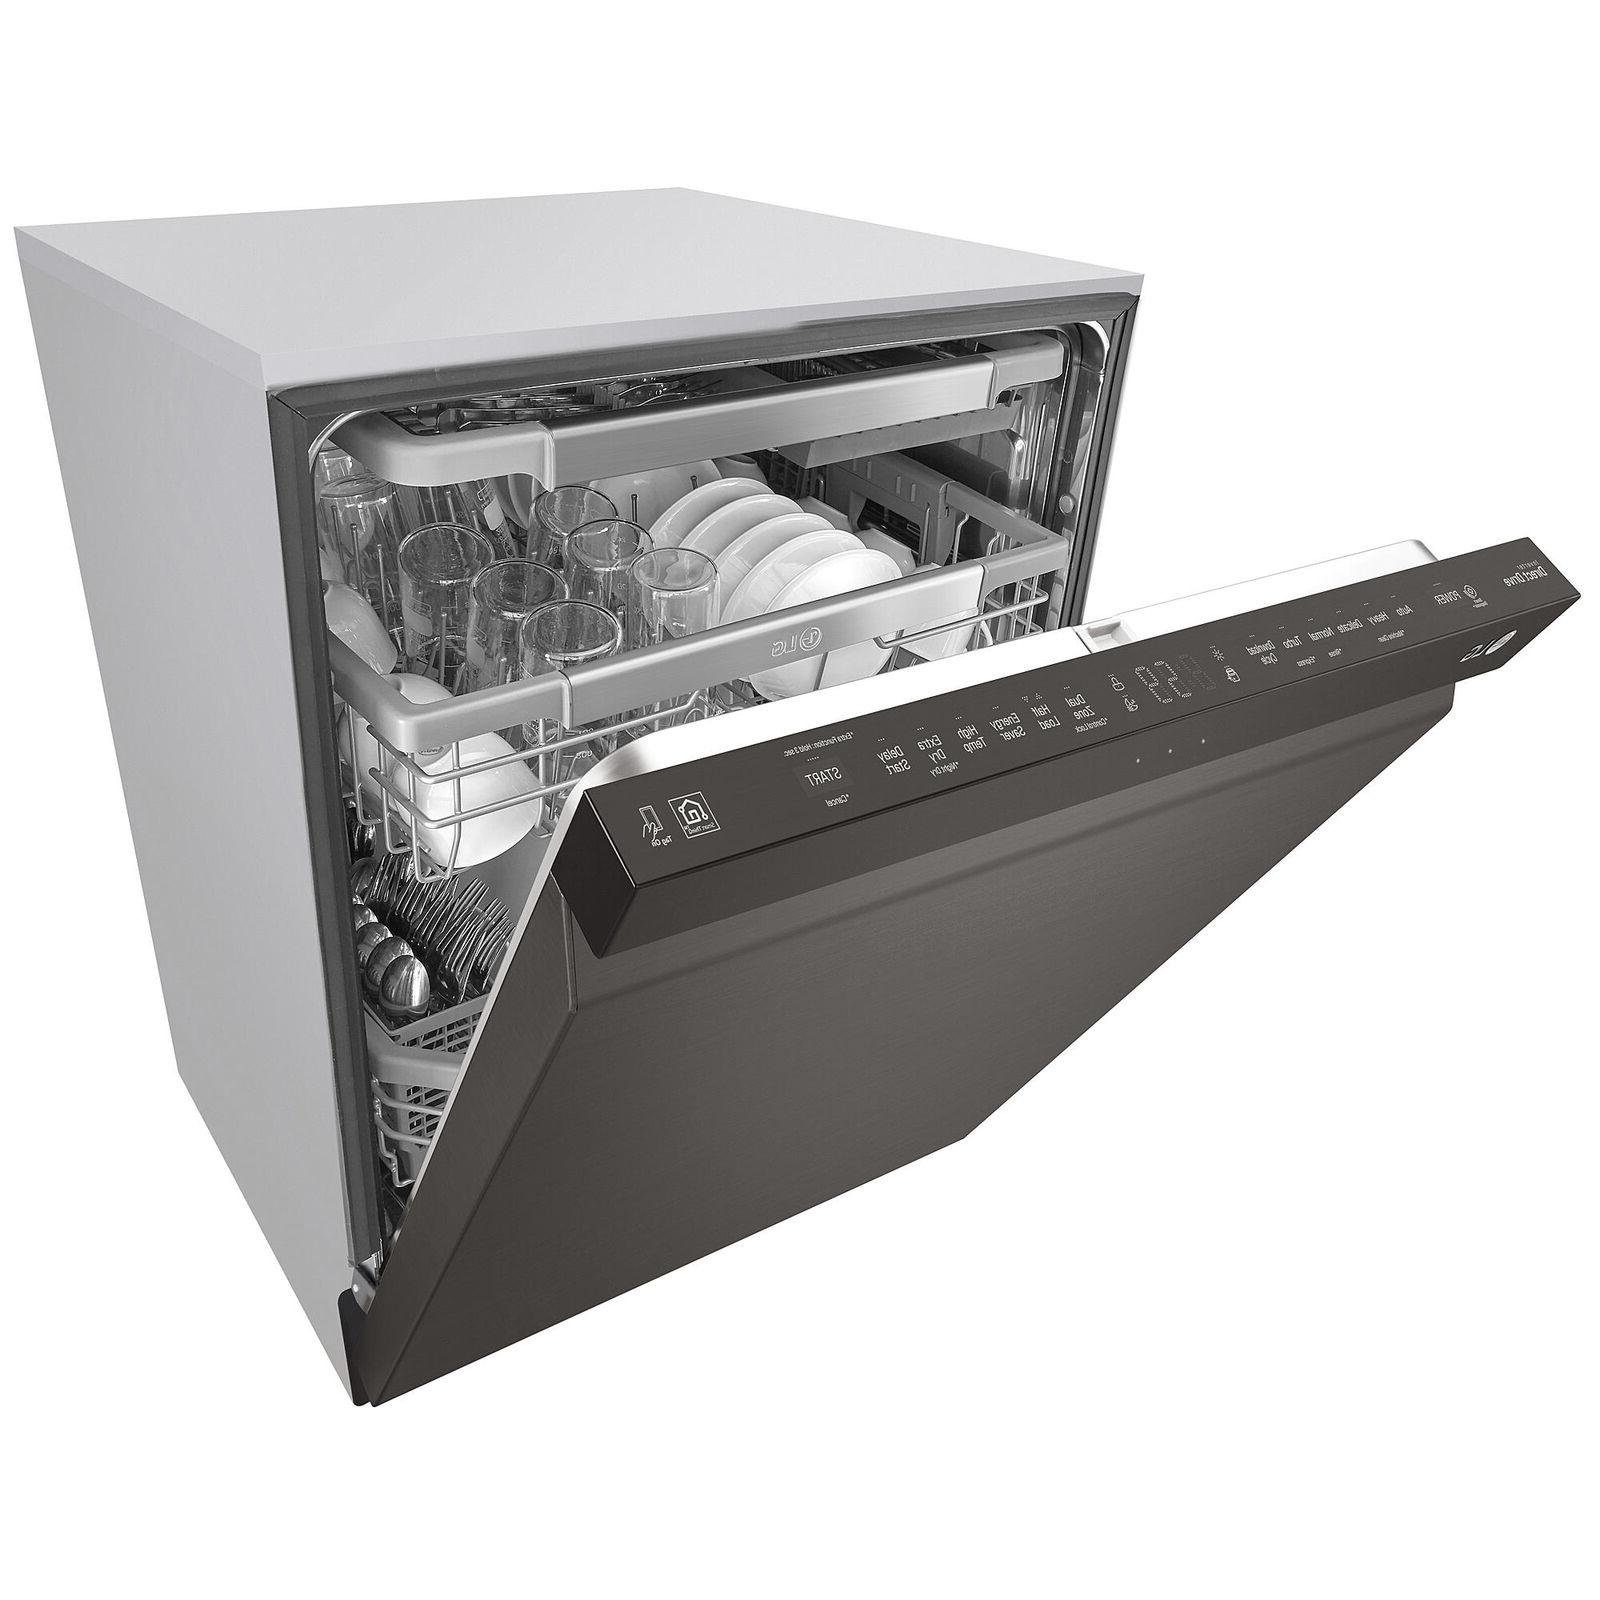 NEW FREE SHIPPING LG LDP6797BD Top Control Dishwasher